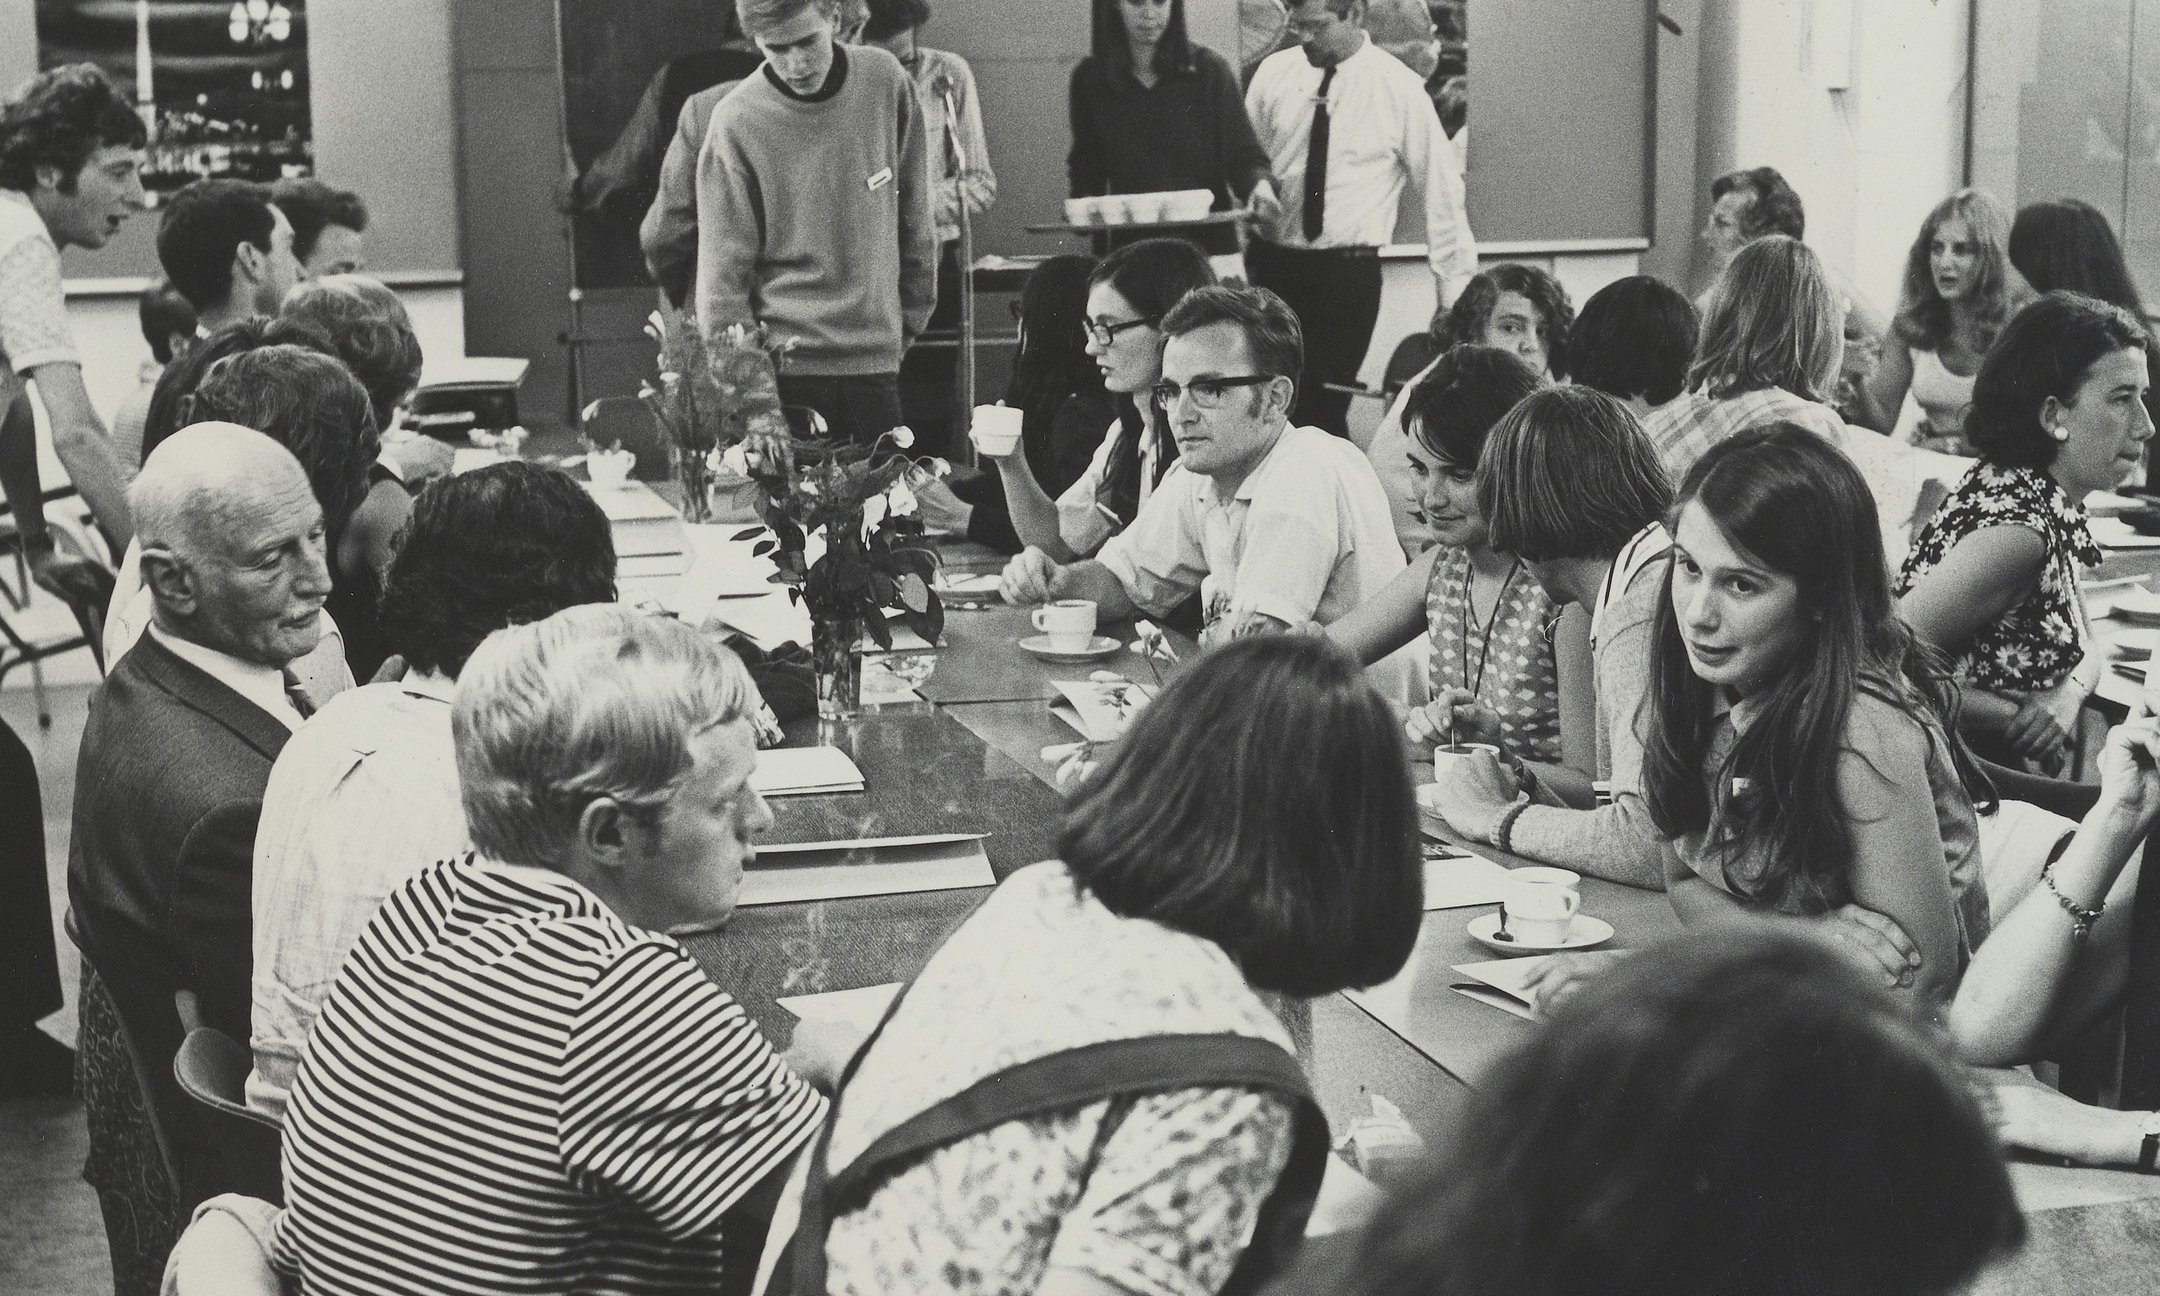 July 1968, summer conference at the Anne Frank House. Otto Frank is on the left among a group of young people. Photo collection Anne Frank Stichting, Amsterdam. Students of ECL Haarlem in a social studies class discuss a statement from the lesson material of the Anne Frank Stichting.